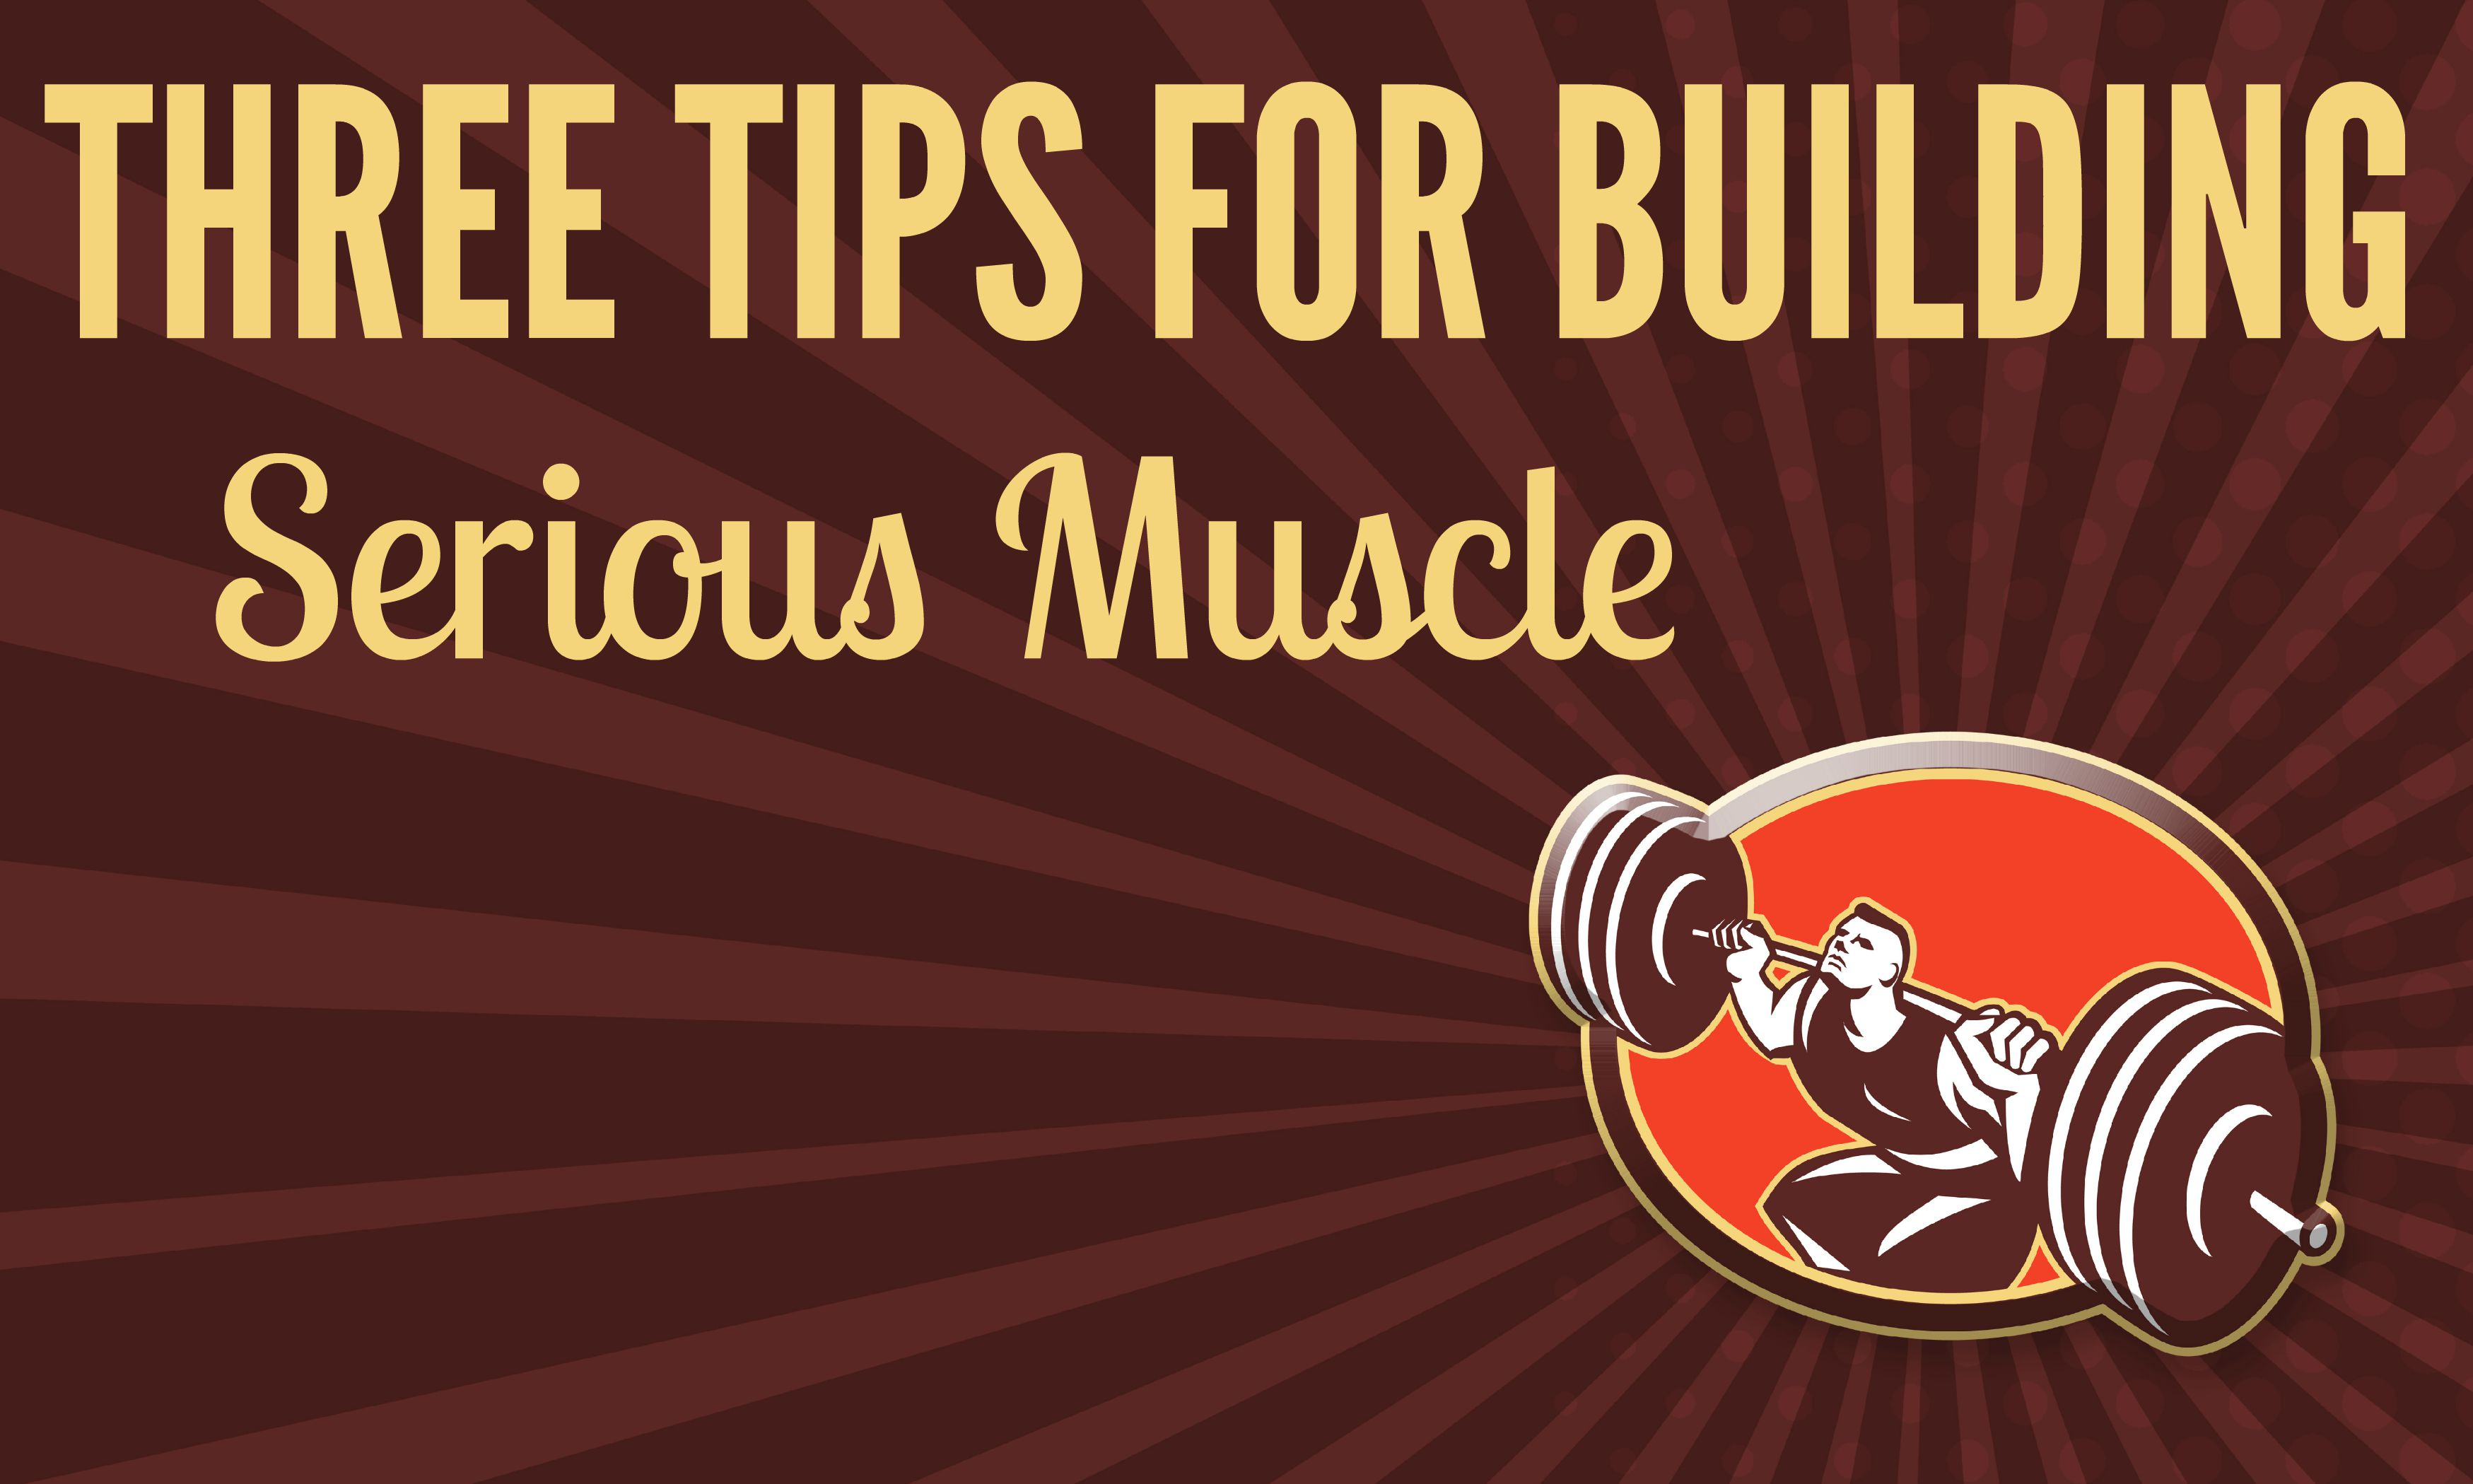 THREE TIPS FOR BUILDING MUSCLE